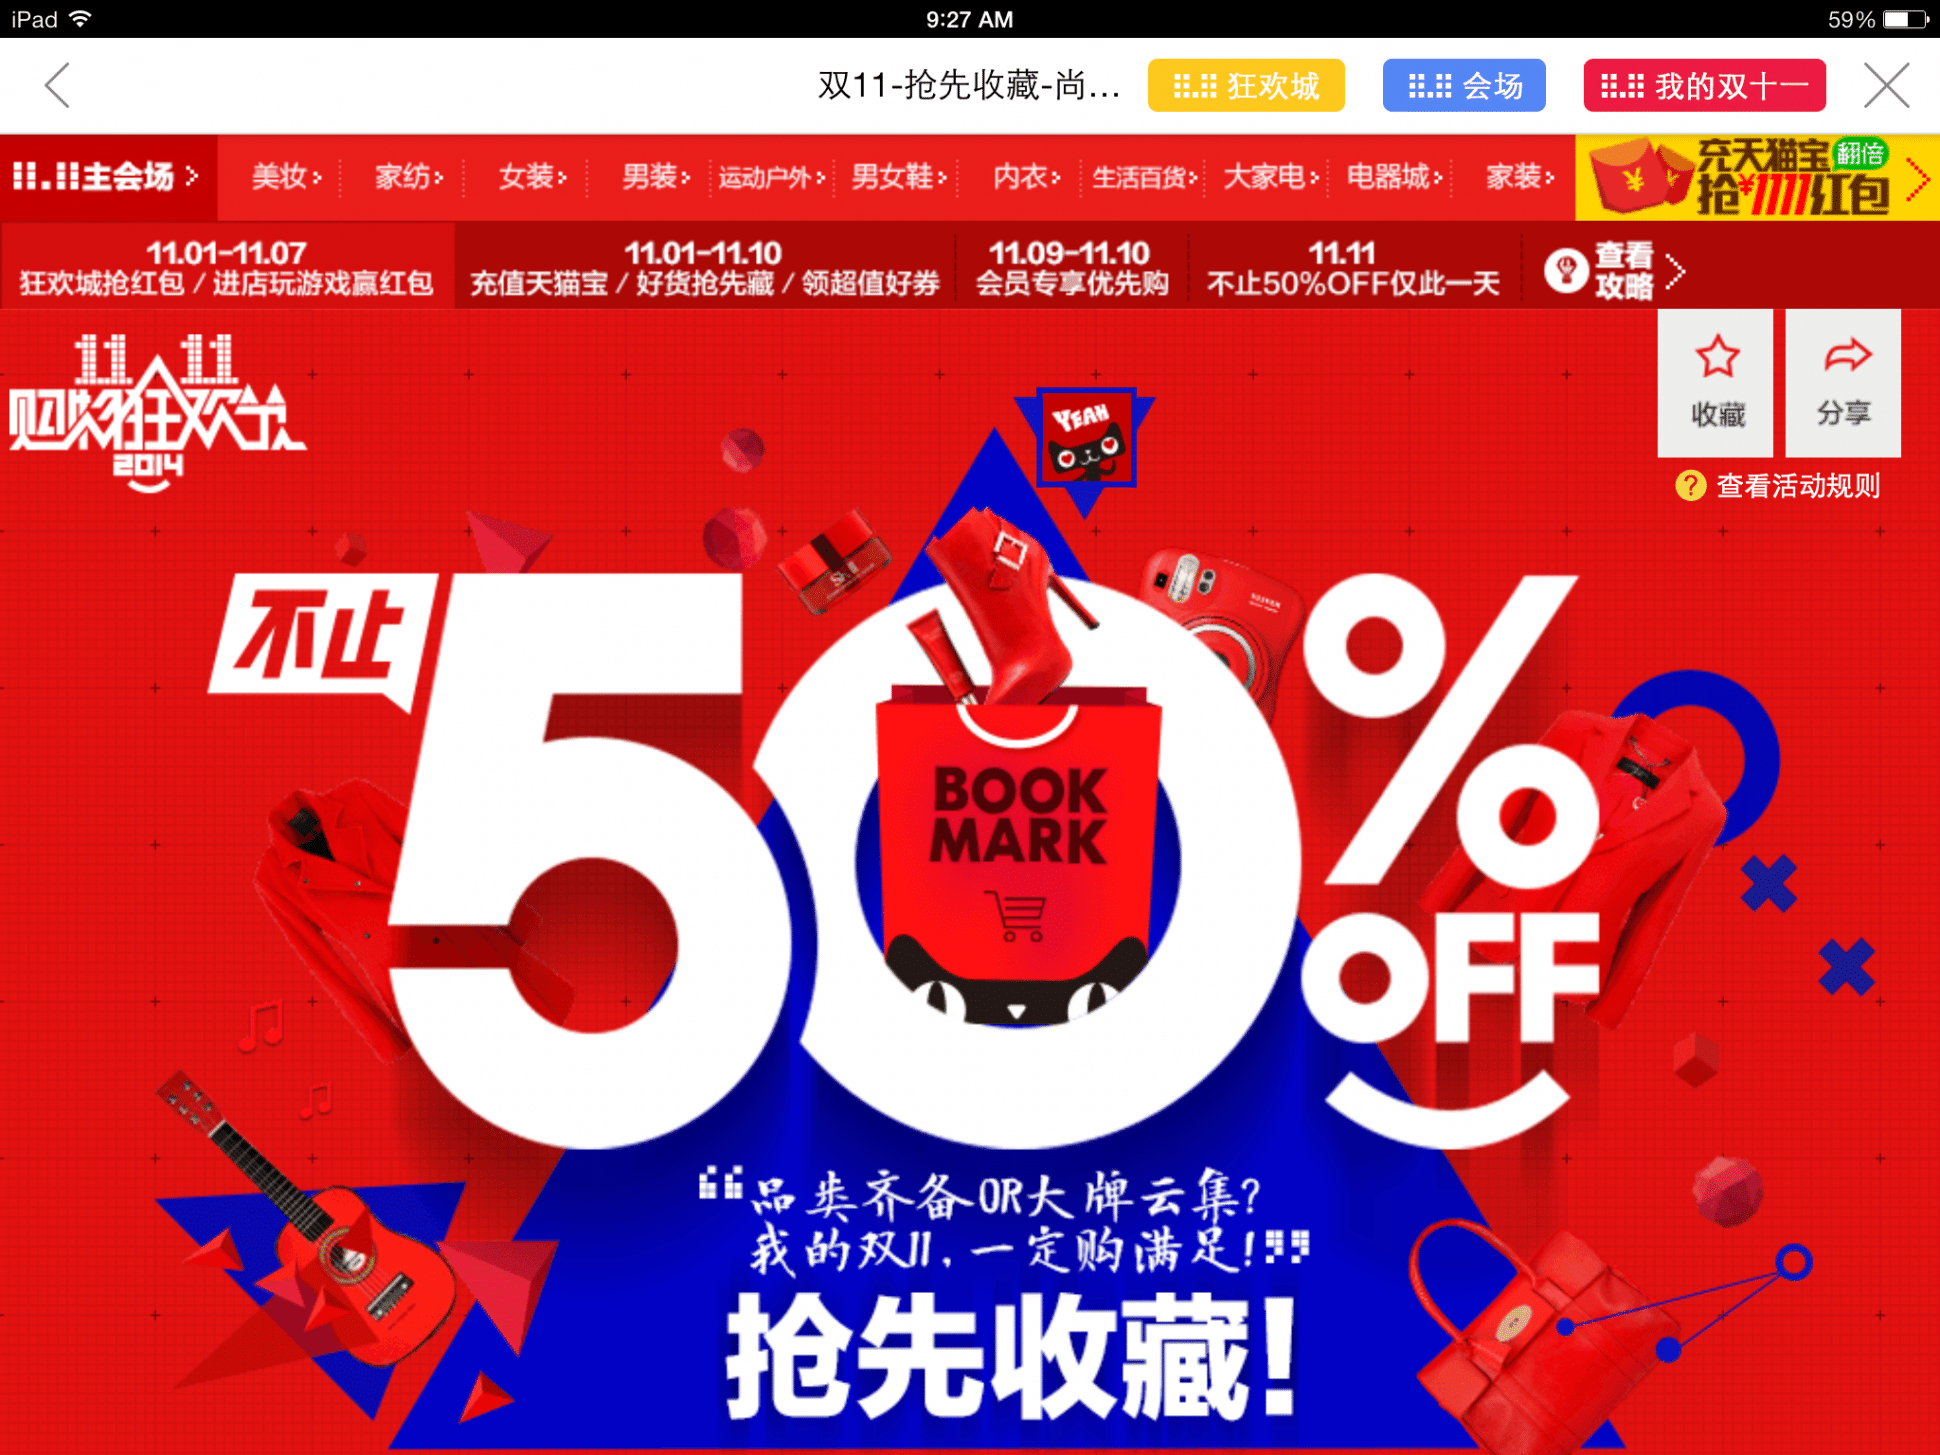 singles-day-china-11-november-asia-tech-ecommerce-alibaba